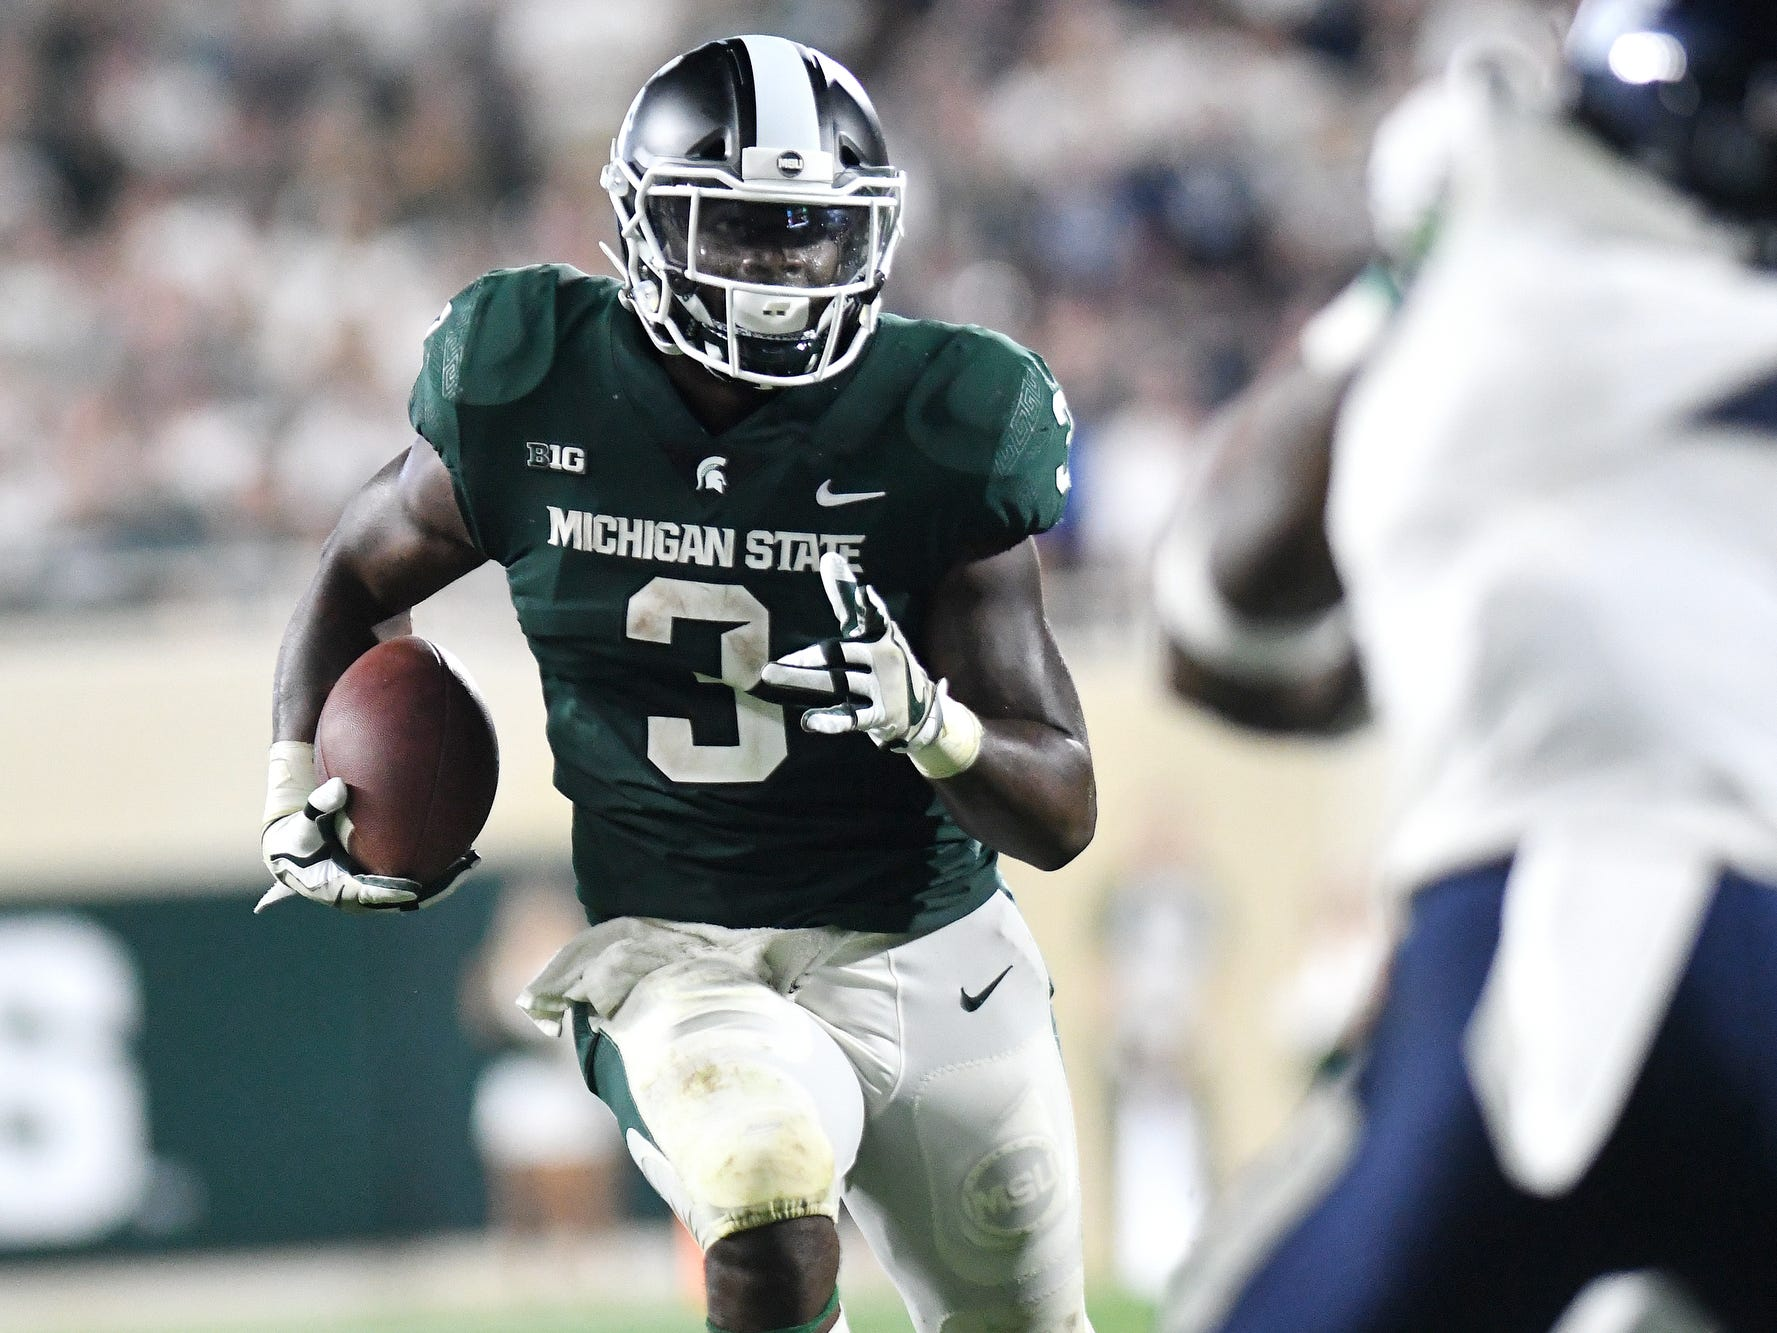 Michigan State's LJ Scott runs with the ball during the fourth quarter on Friday, Aug. 31, 2018, at Spartan Stadium in East Lansing.